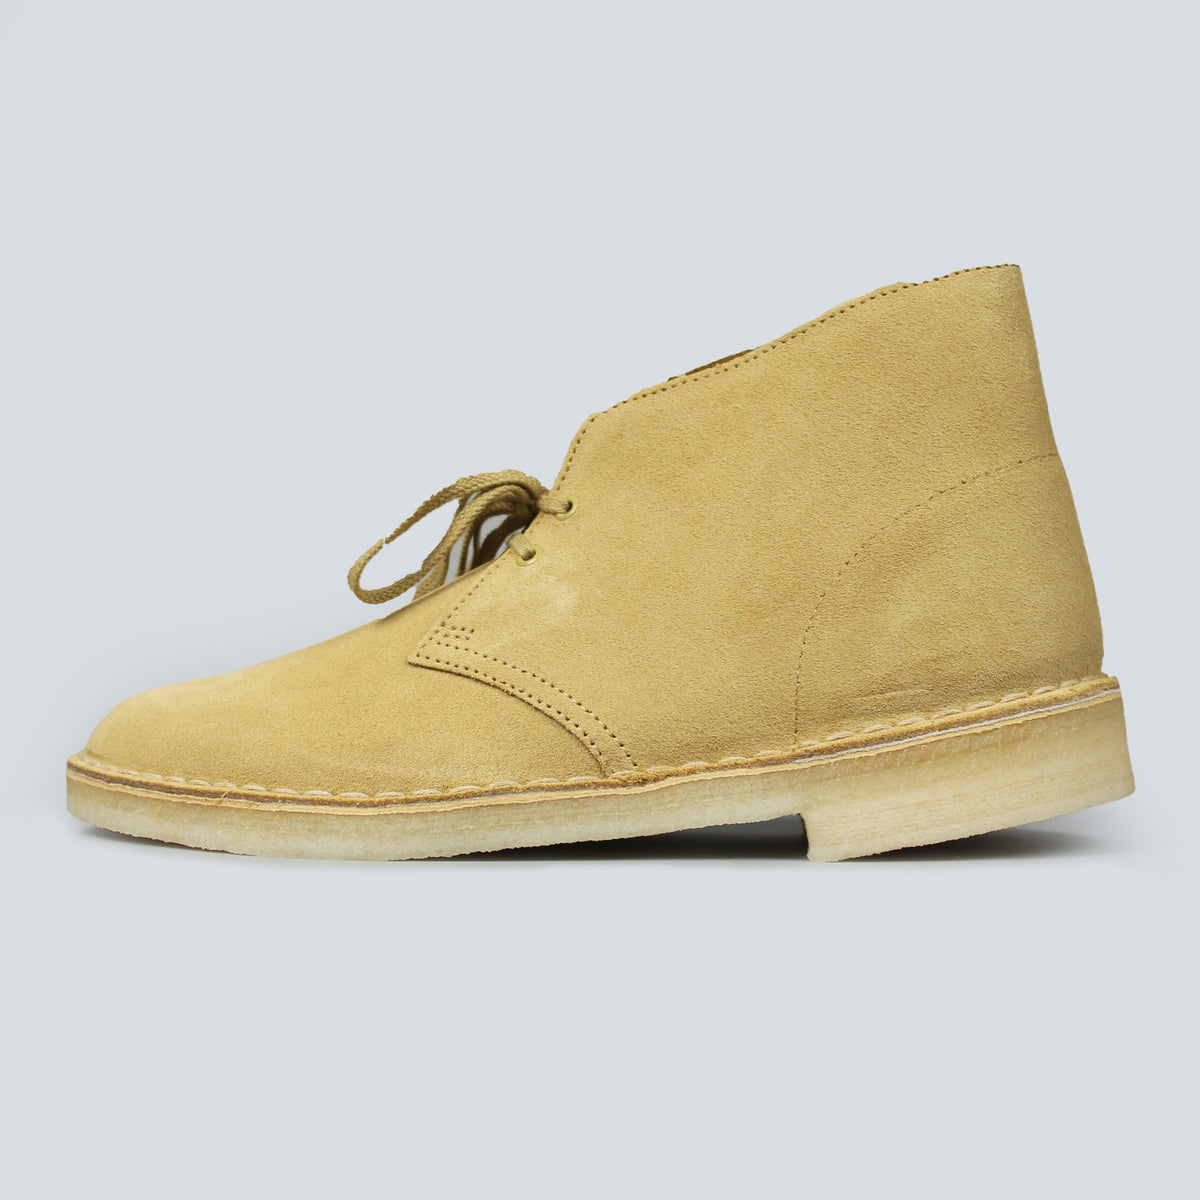 CLARKS ORIGINALS - DESERT BOOT - MAPLE SUEDE